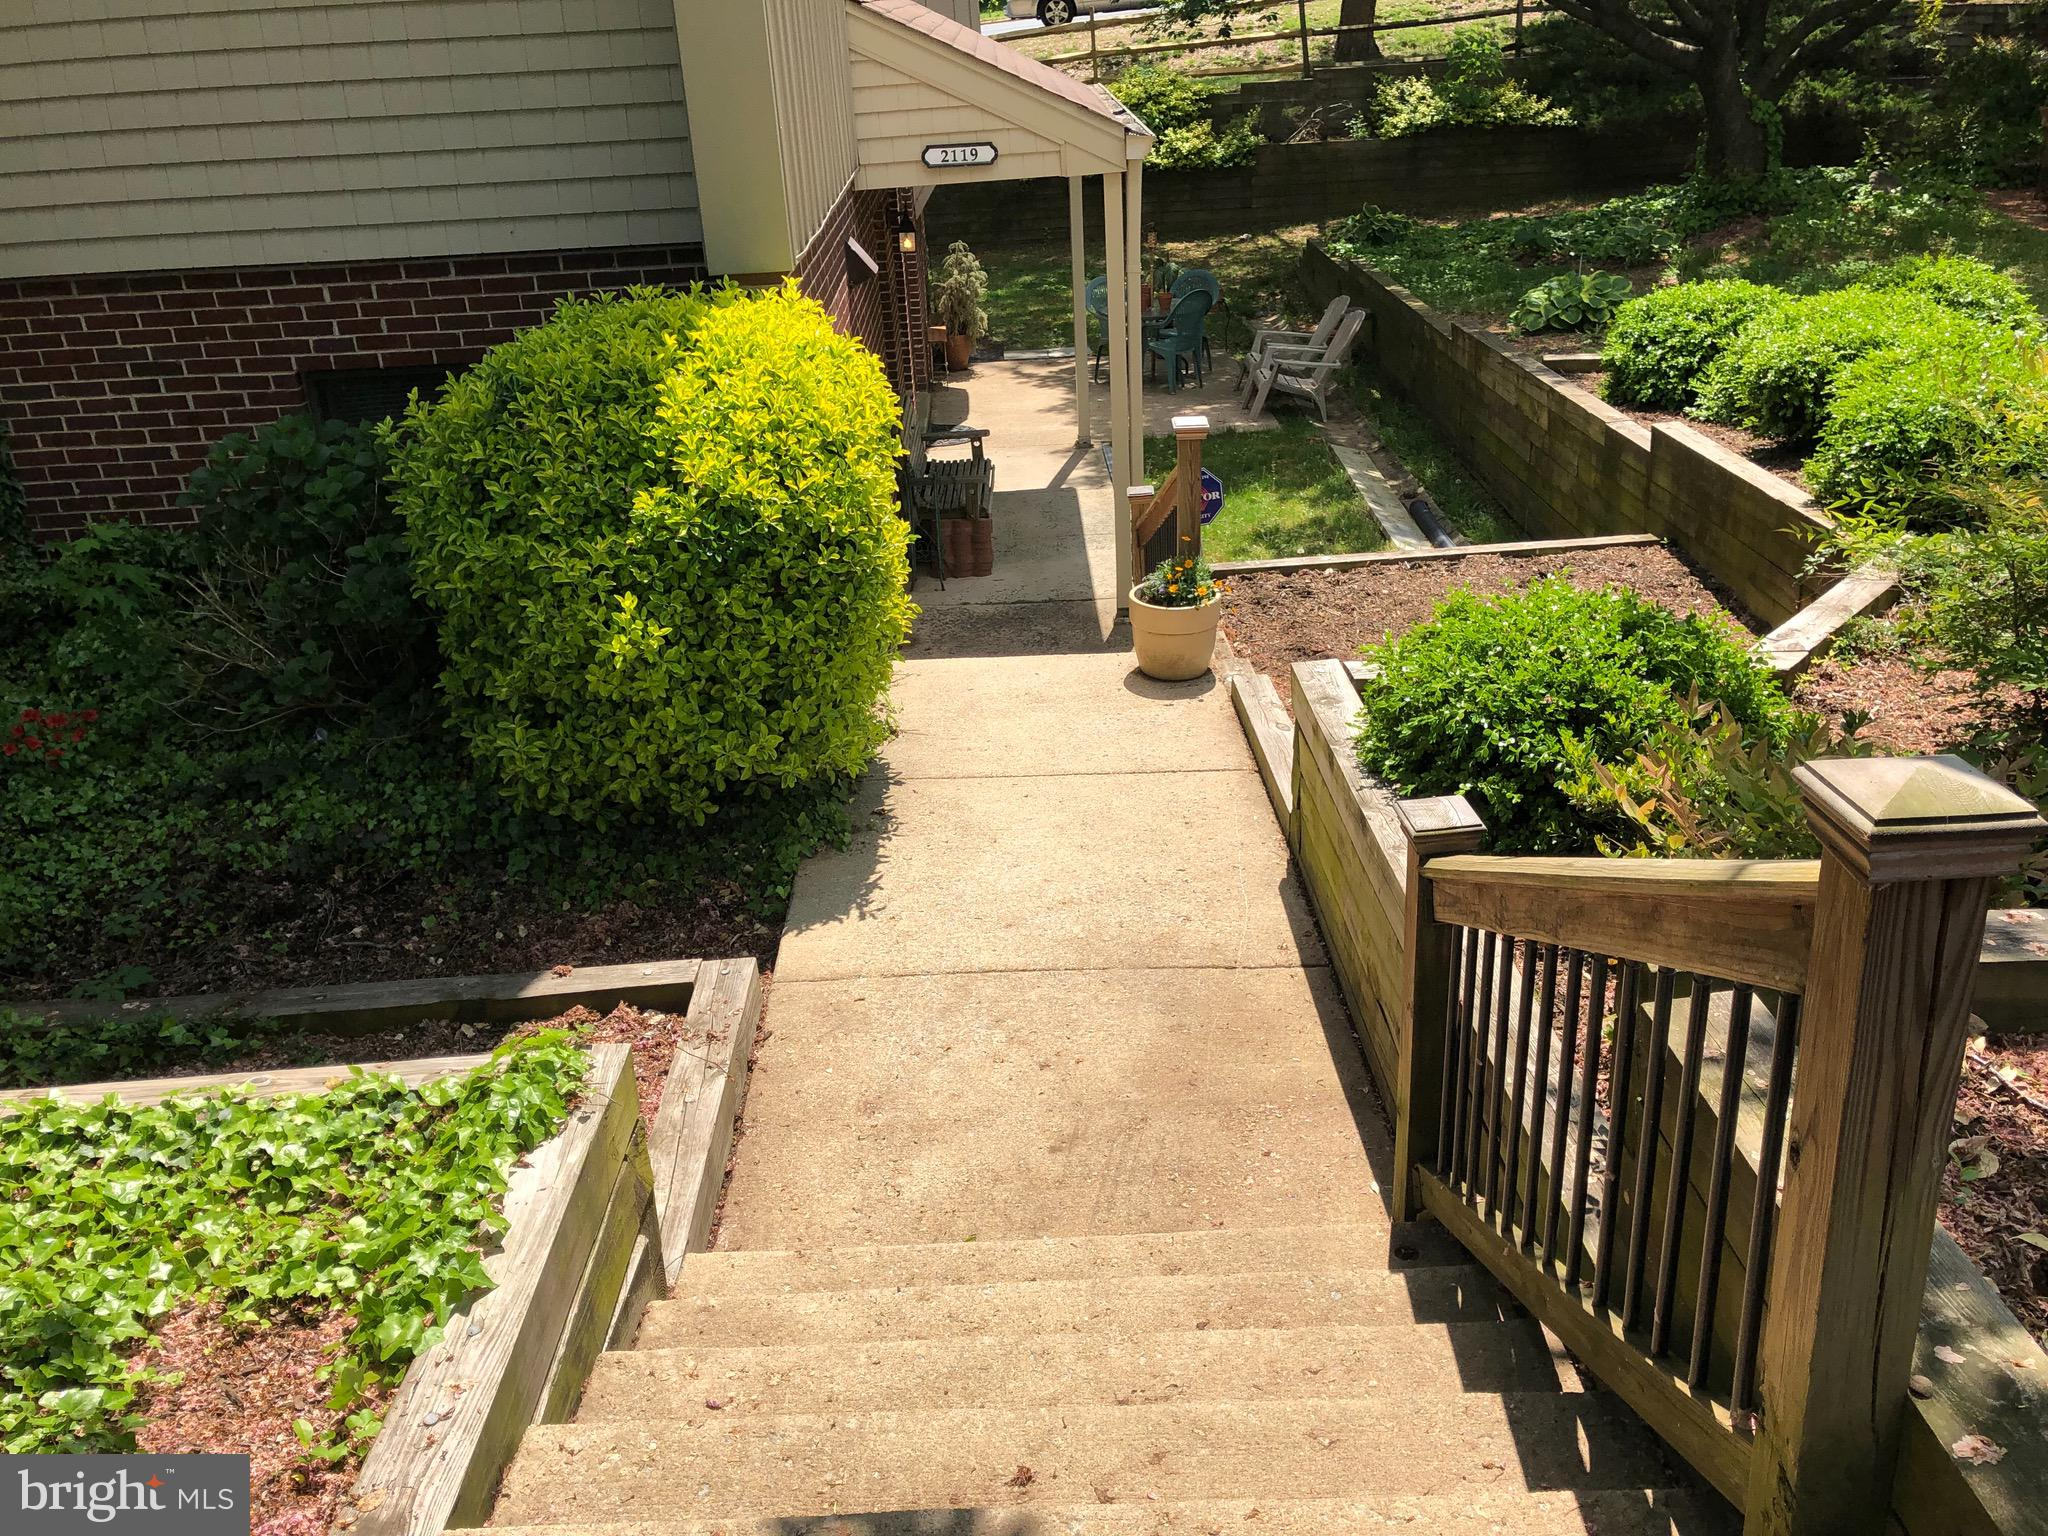 Rarely available and very spacious 2 Bedrooms, 2 baths condo, in the sought after Rippon Landing Neighborhood.  Large living room with a masonry wall, fireplace, and sliding doors to patio.  Private entrance. Perfect home for those looking for 1 level living with all the amenities. Kitchen with granite countertops, upgraded cabinets, and pantry.  Washer & dryer in unit. All water pipes and HVAC replaced. Master suite with 2 large closets and a lot of storage space.  Condo fee includes water, sewer, trash, outside maintenance, management, and master insurance.  HOA pays for Community pool, tennis, jogging trails and community landscaping.  2 assigned parking spots and plenty of visitors parking spaces. Excellent location!  Easy access to VRE rail station, I95, and Rt1.  Near Northern Virginia Community College - Woodbridge Campus.  Enjoy dining and shopping at Stonebridge at Potomac Town Center. Condo is not FHA approved.